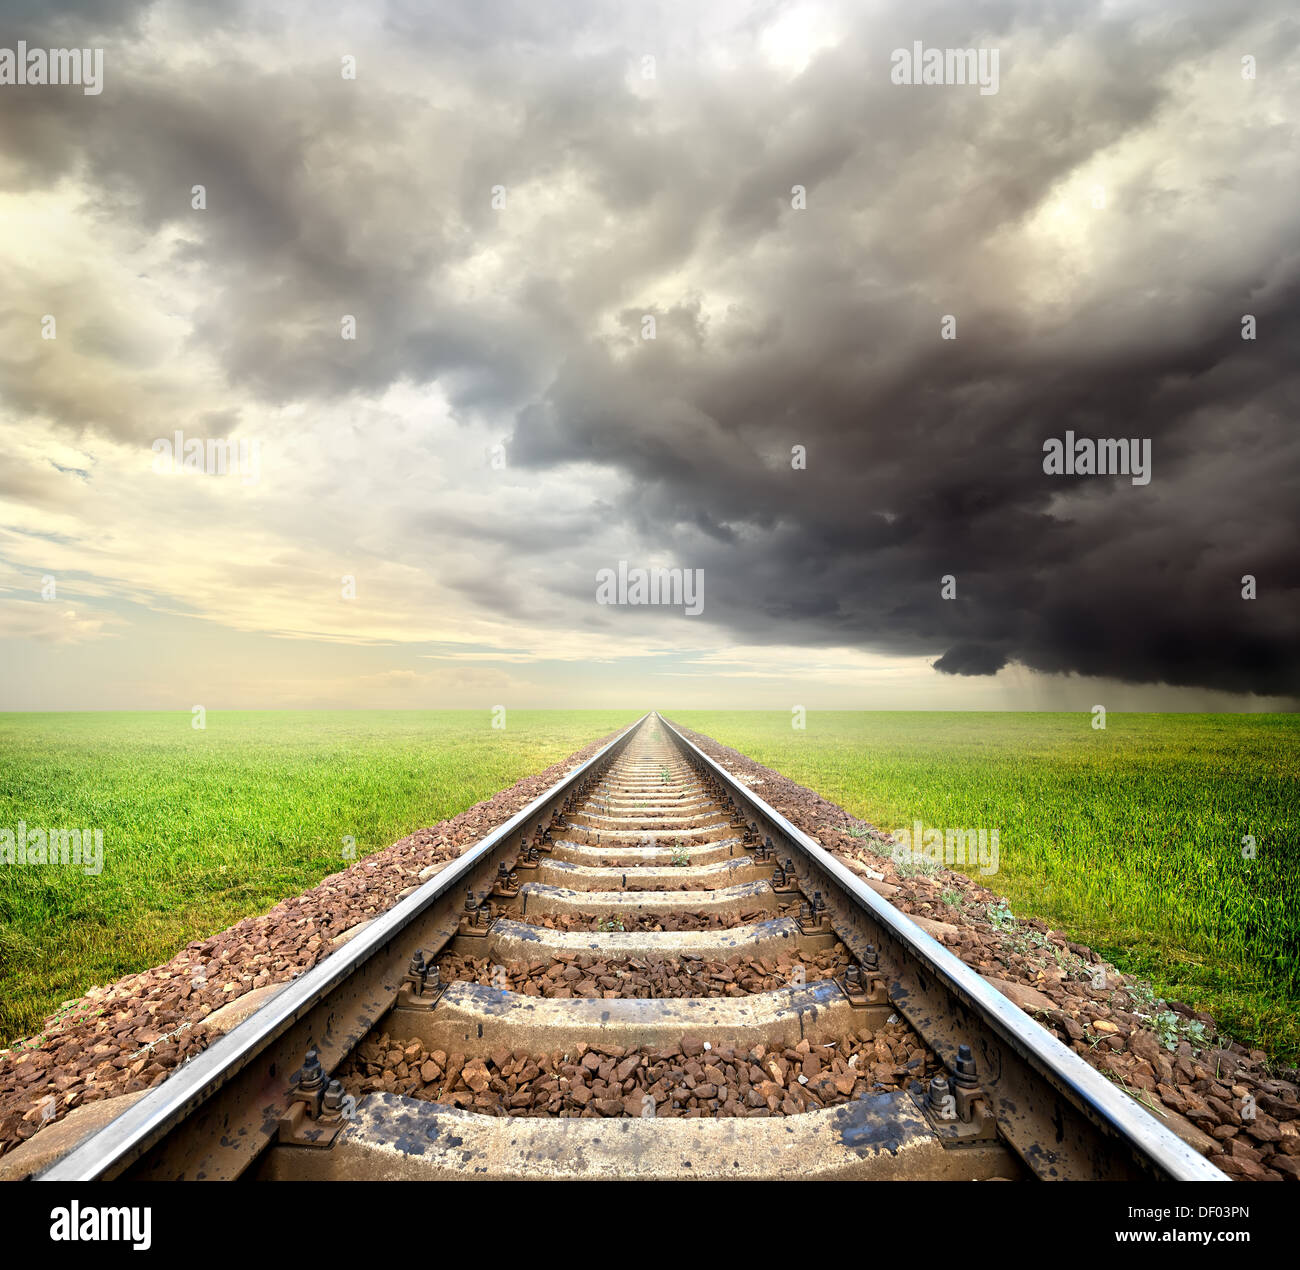 Railway in the field and storm clouds - Stock Image